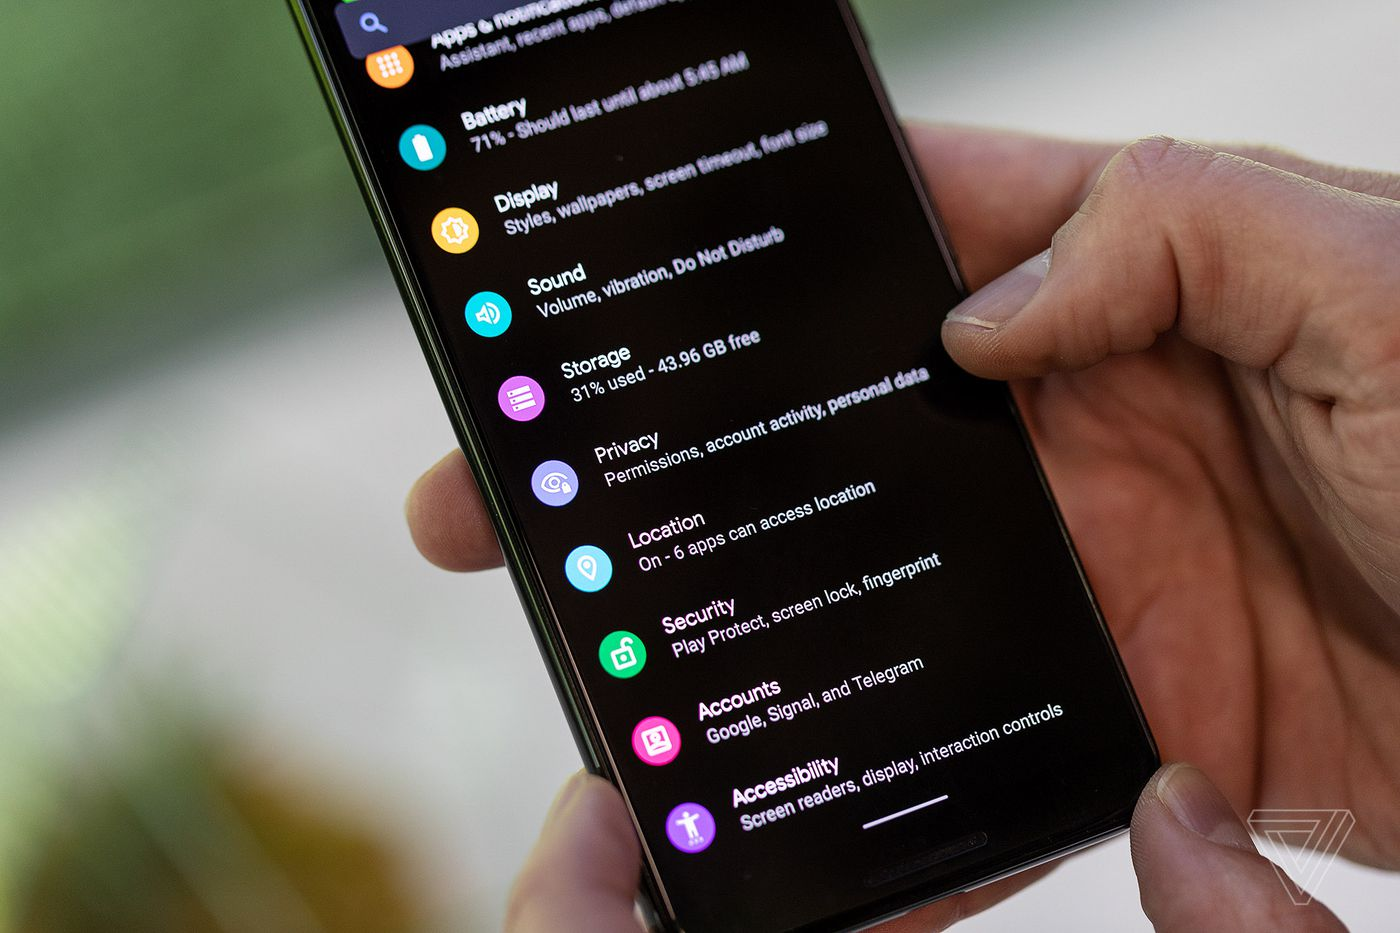 Android Q exclusive first look: better gestures, live